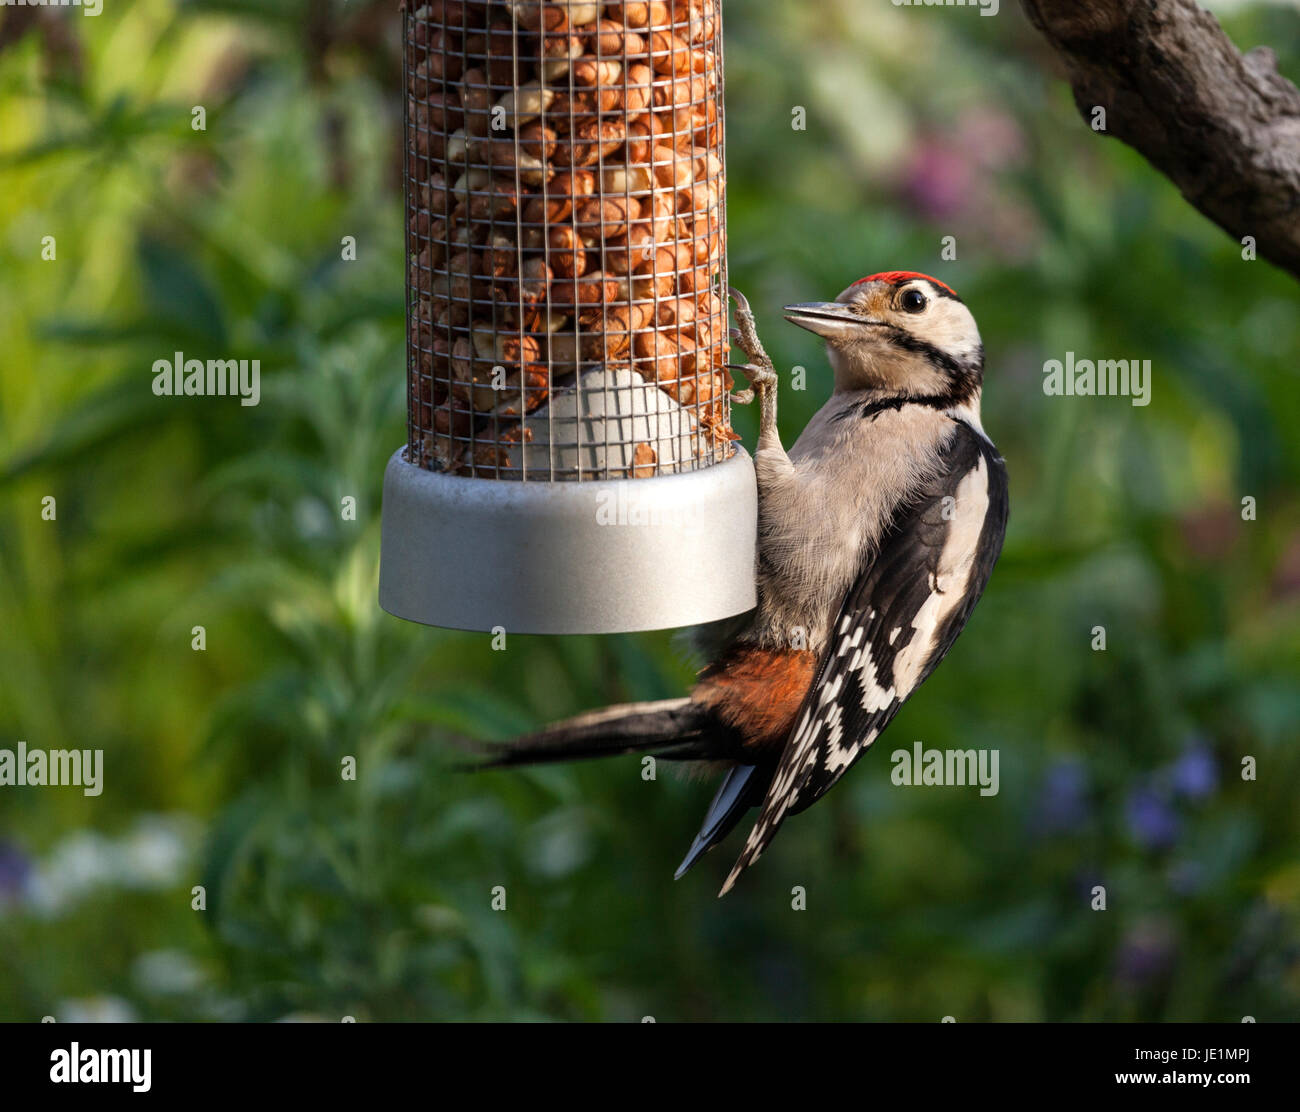 Juvenile Great Spotted Woodpecker Dendrocopos major Illuminated by Late Evening Light on Peanut Feeder UK - Stock Image